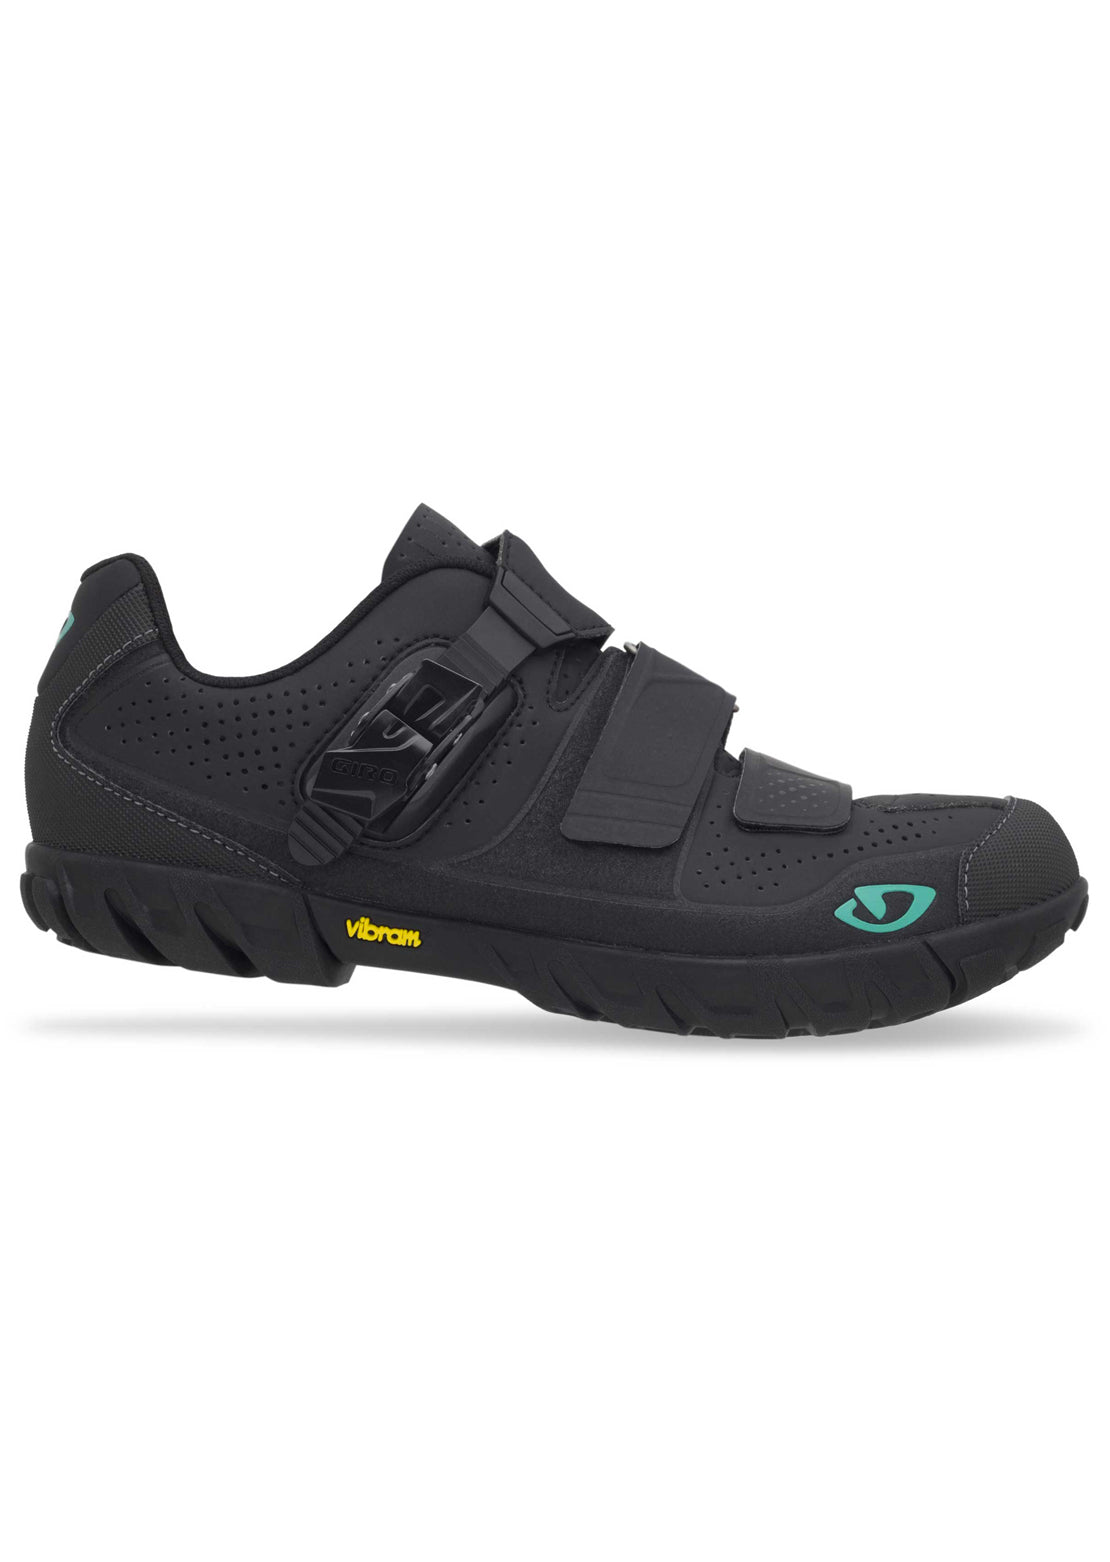 Giro Women's Terradura Clipless Bike Shoes Black/Dynasty Green